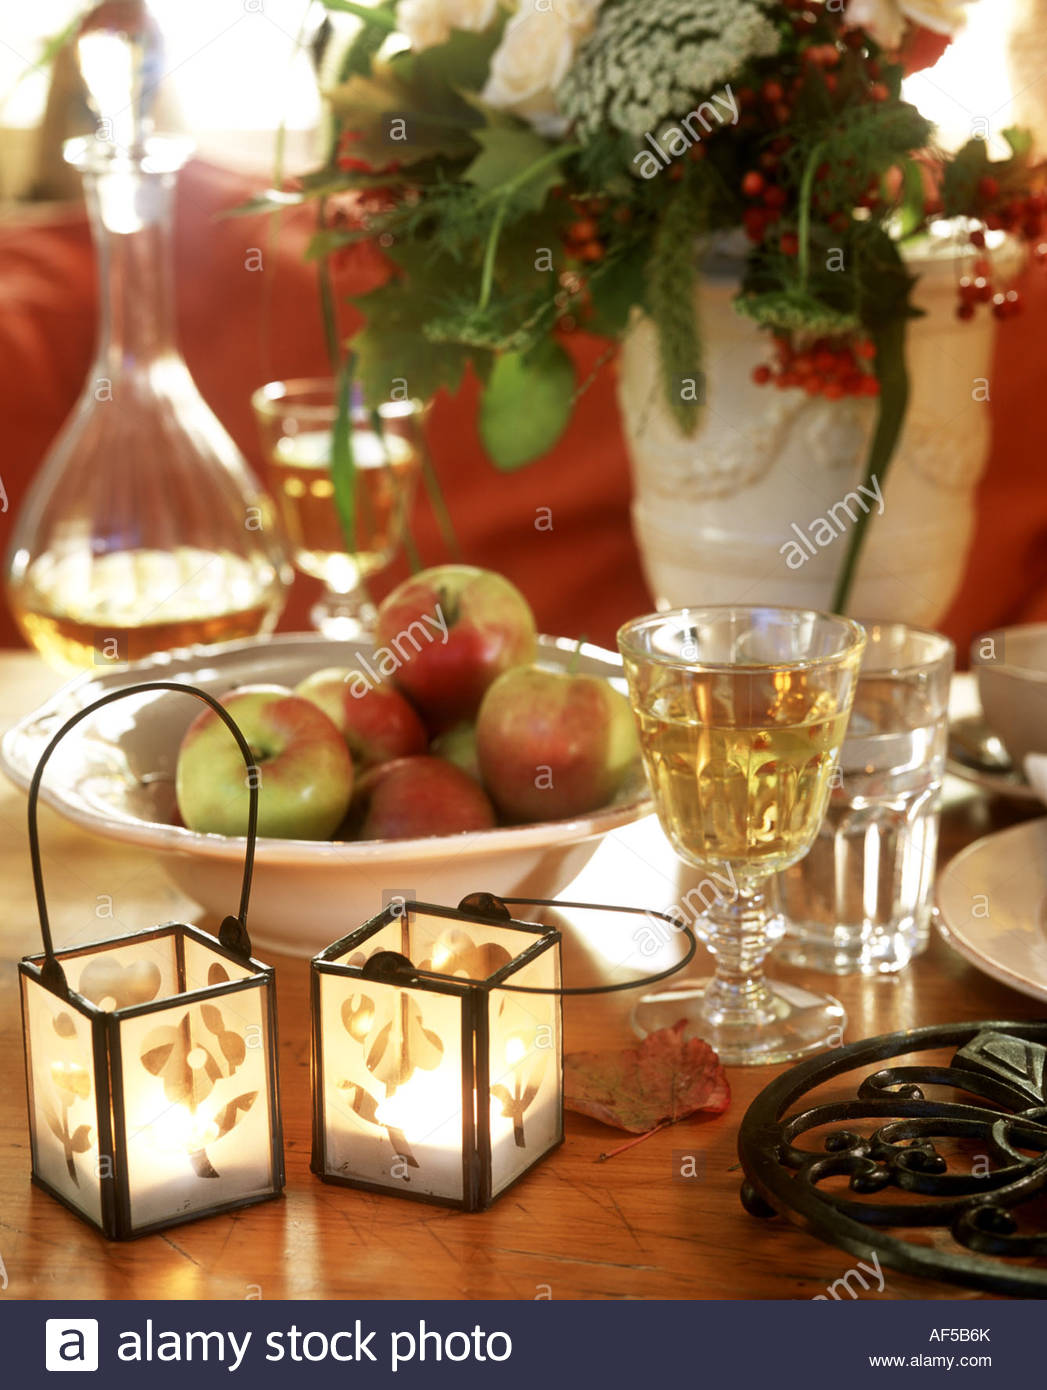 Table decoration for two - Stock Photo Two Small Hurricane Lamps As Autumnal Table Decoration